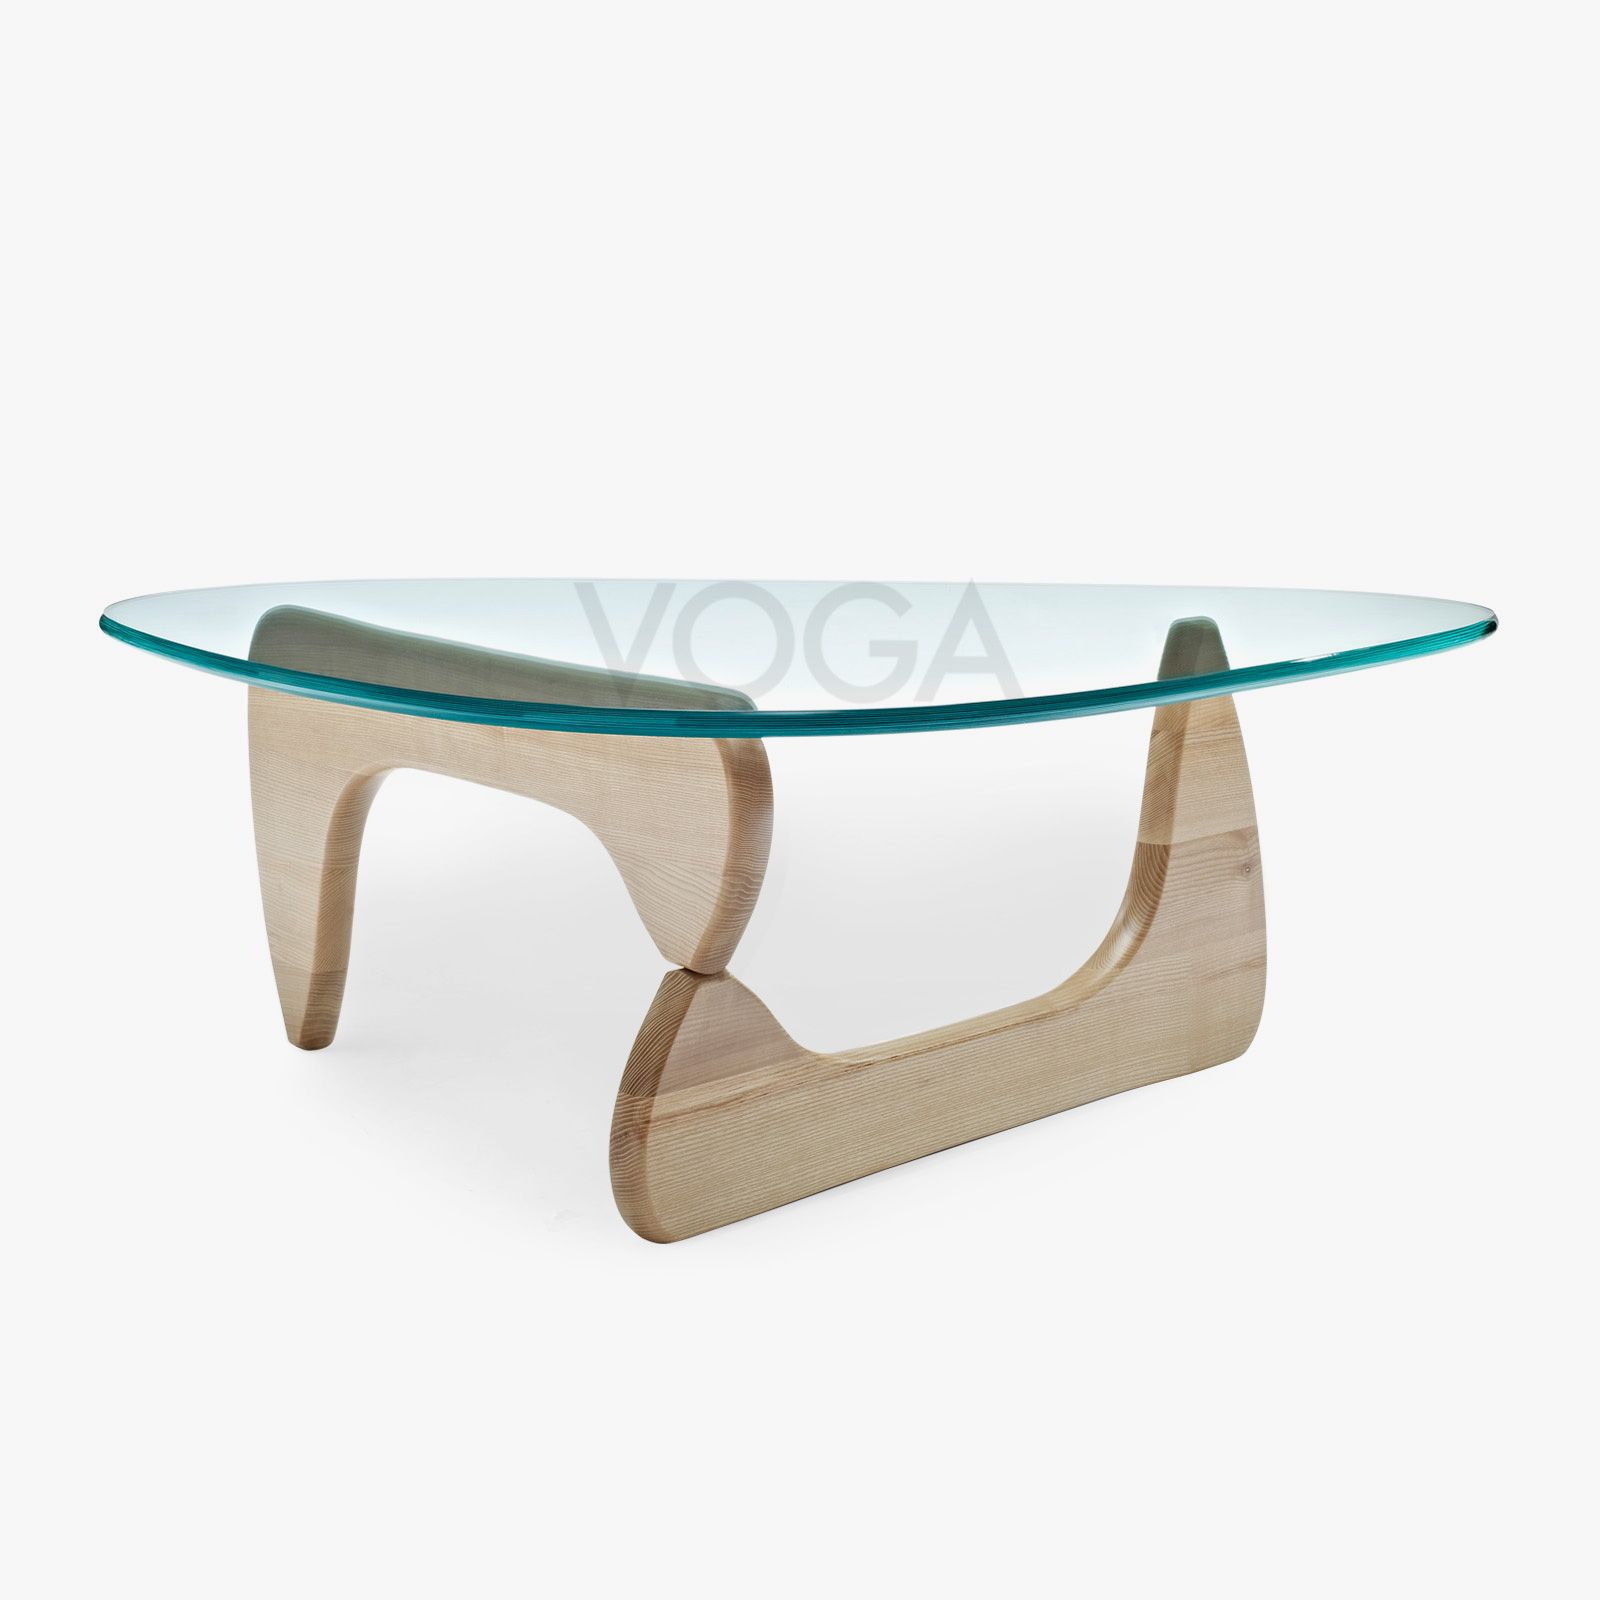 The Isamu Noguchi coffee table is available at VOGA